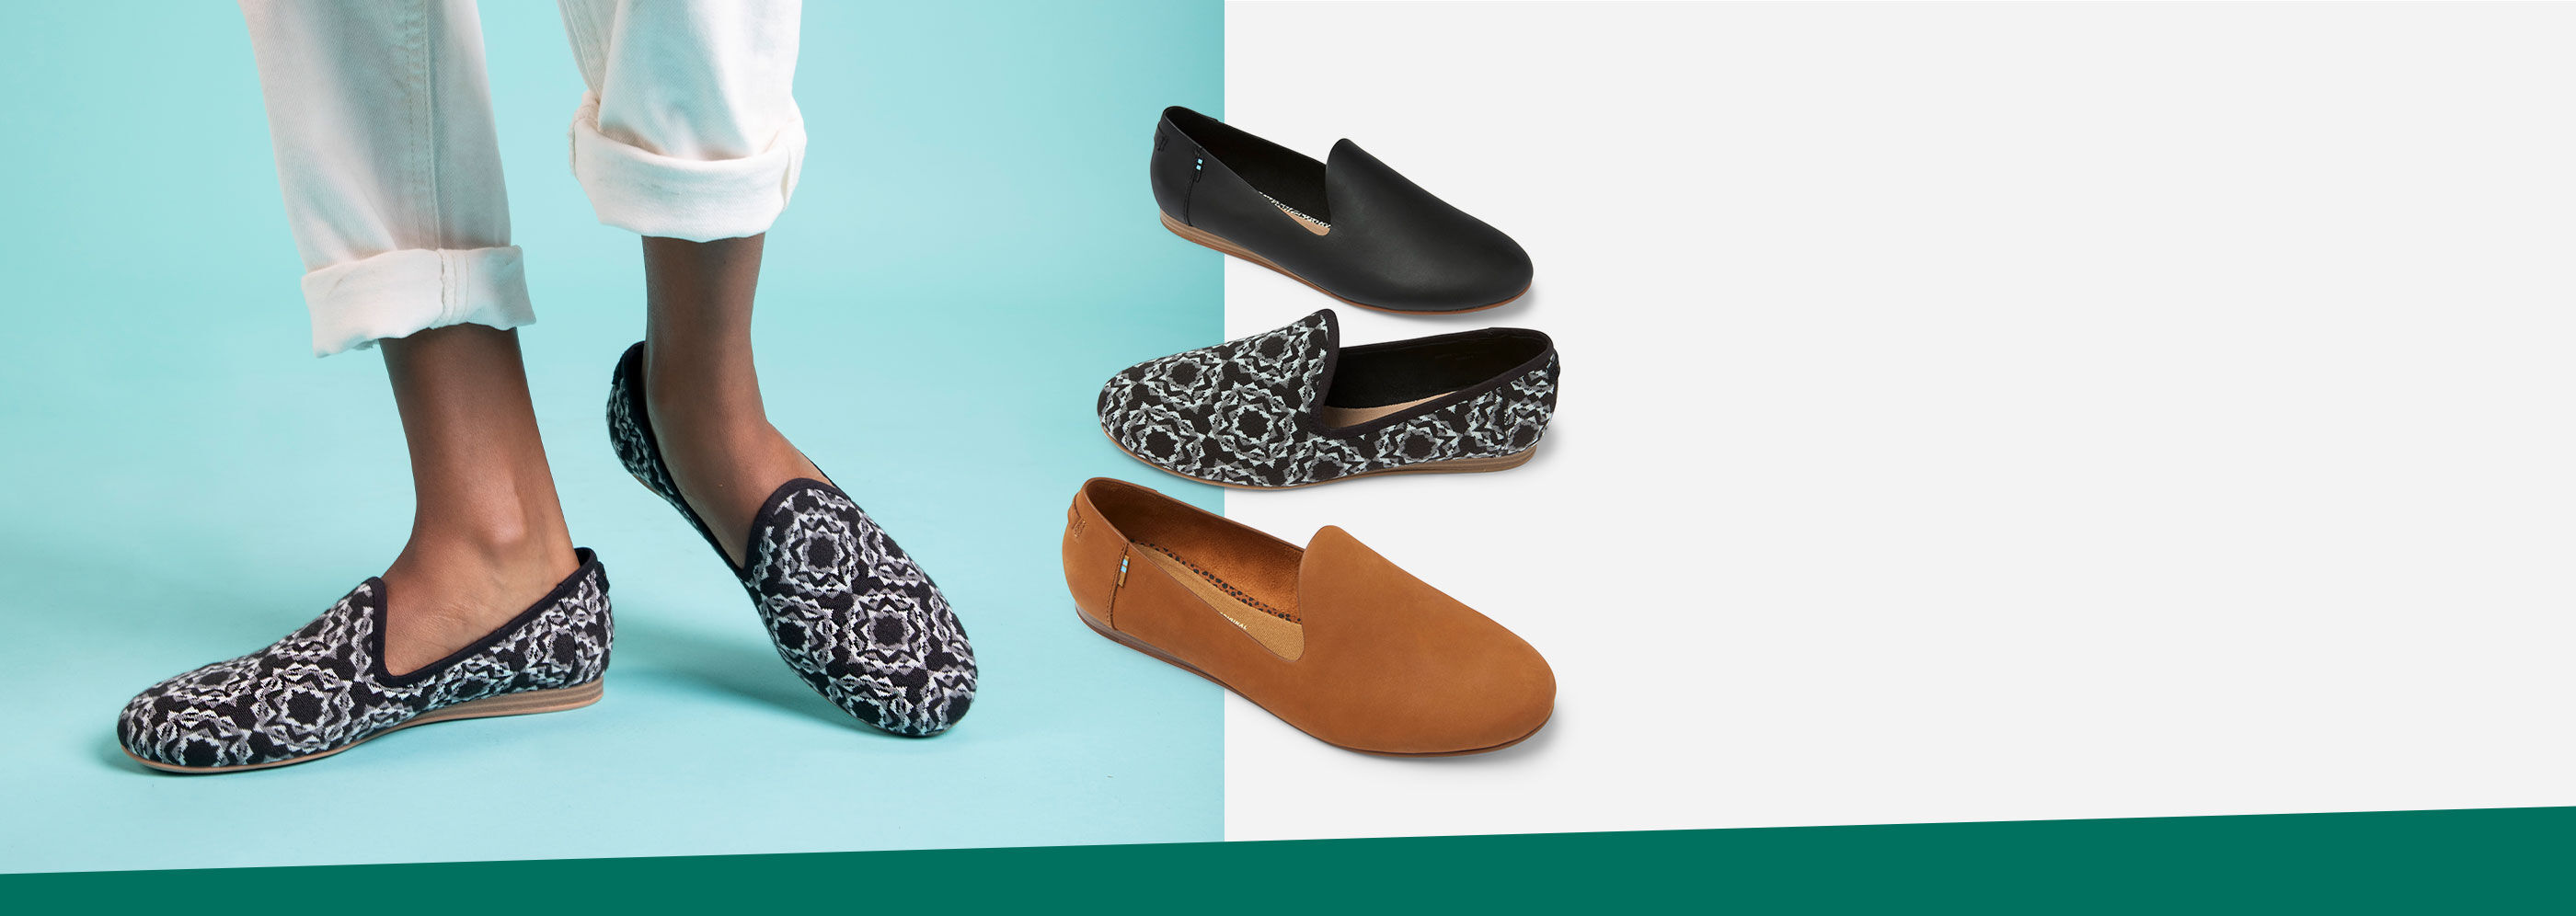 Women's Darcy Flat in various colors shown.